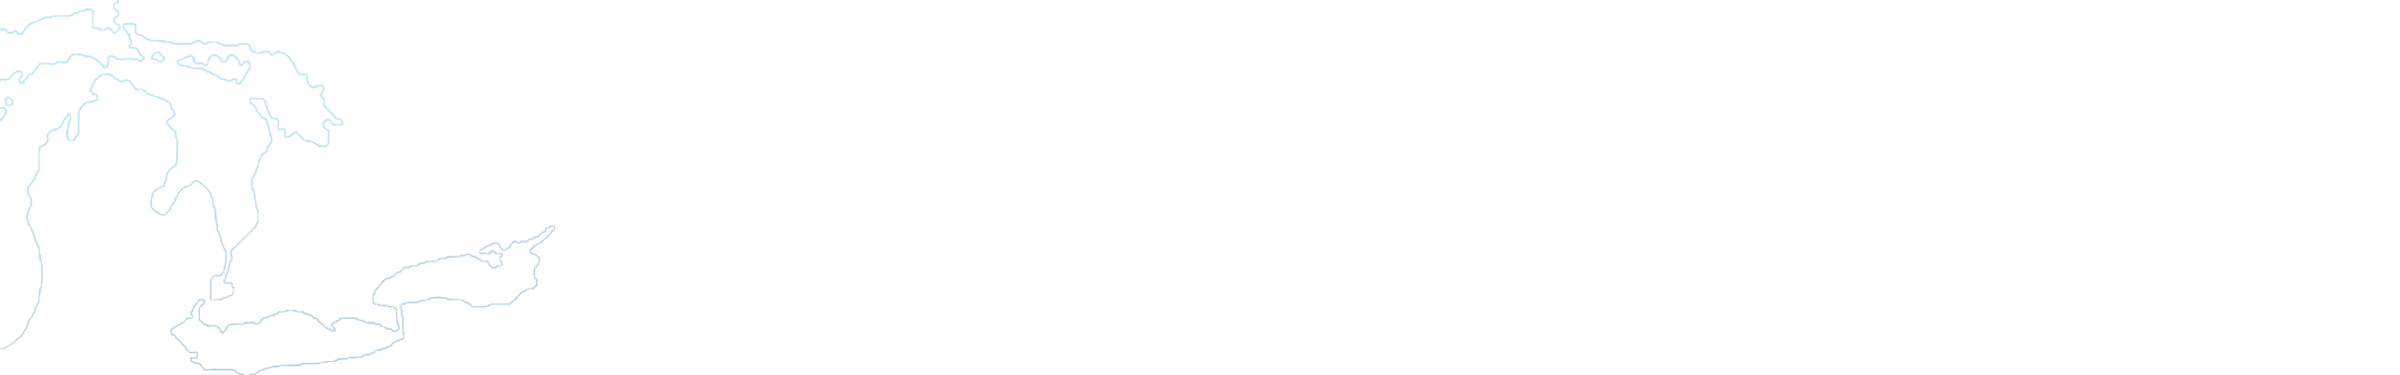 Attawandaron: Hamilton's Publisher